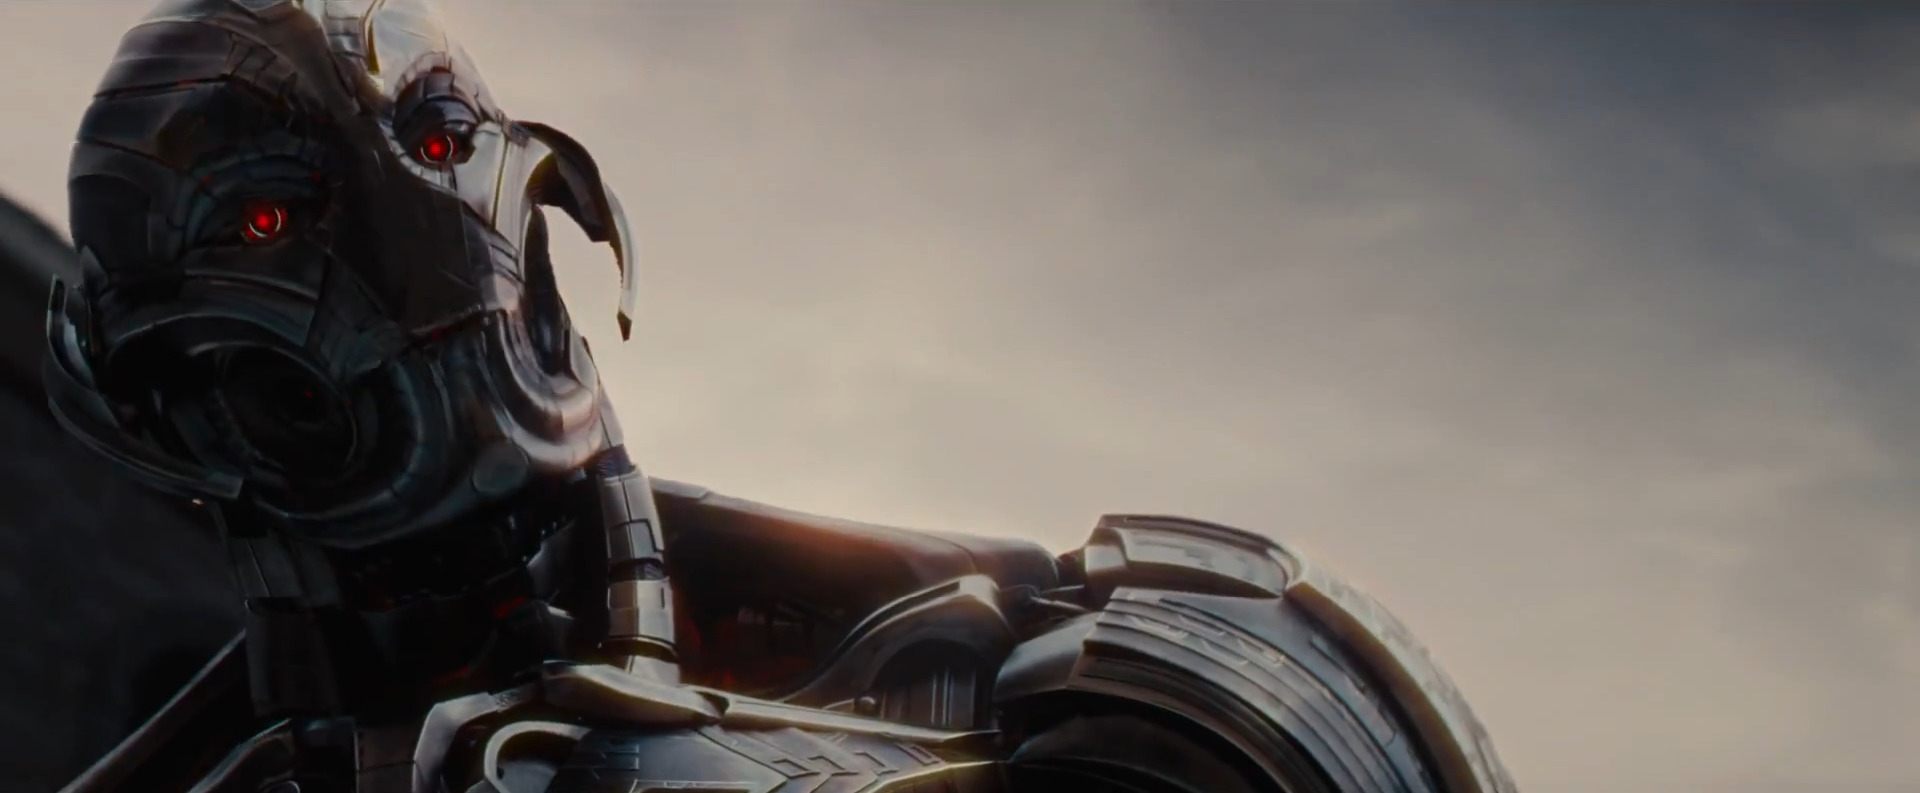 Weekly Roundup 10/26/14: Age of Ultron Breaks the Internet